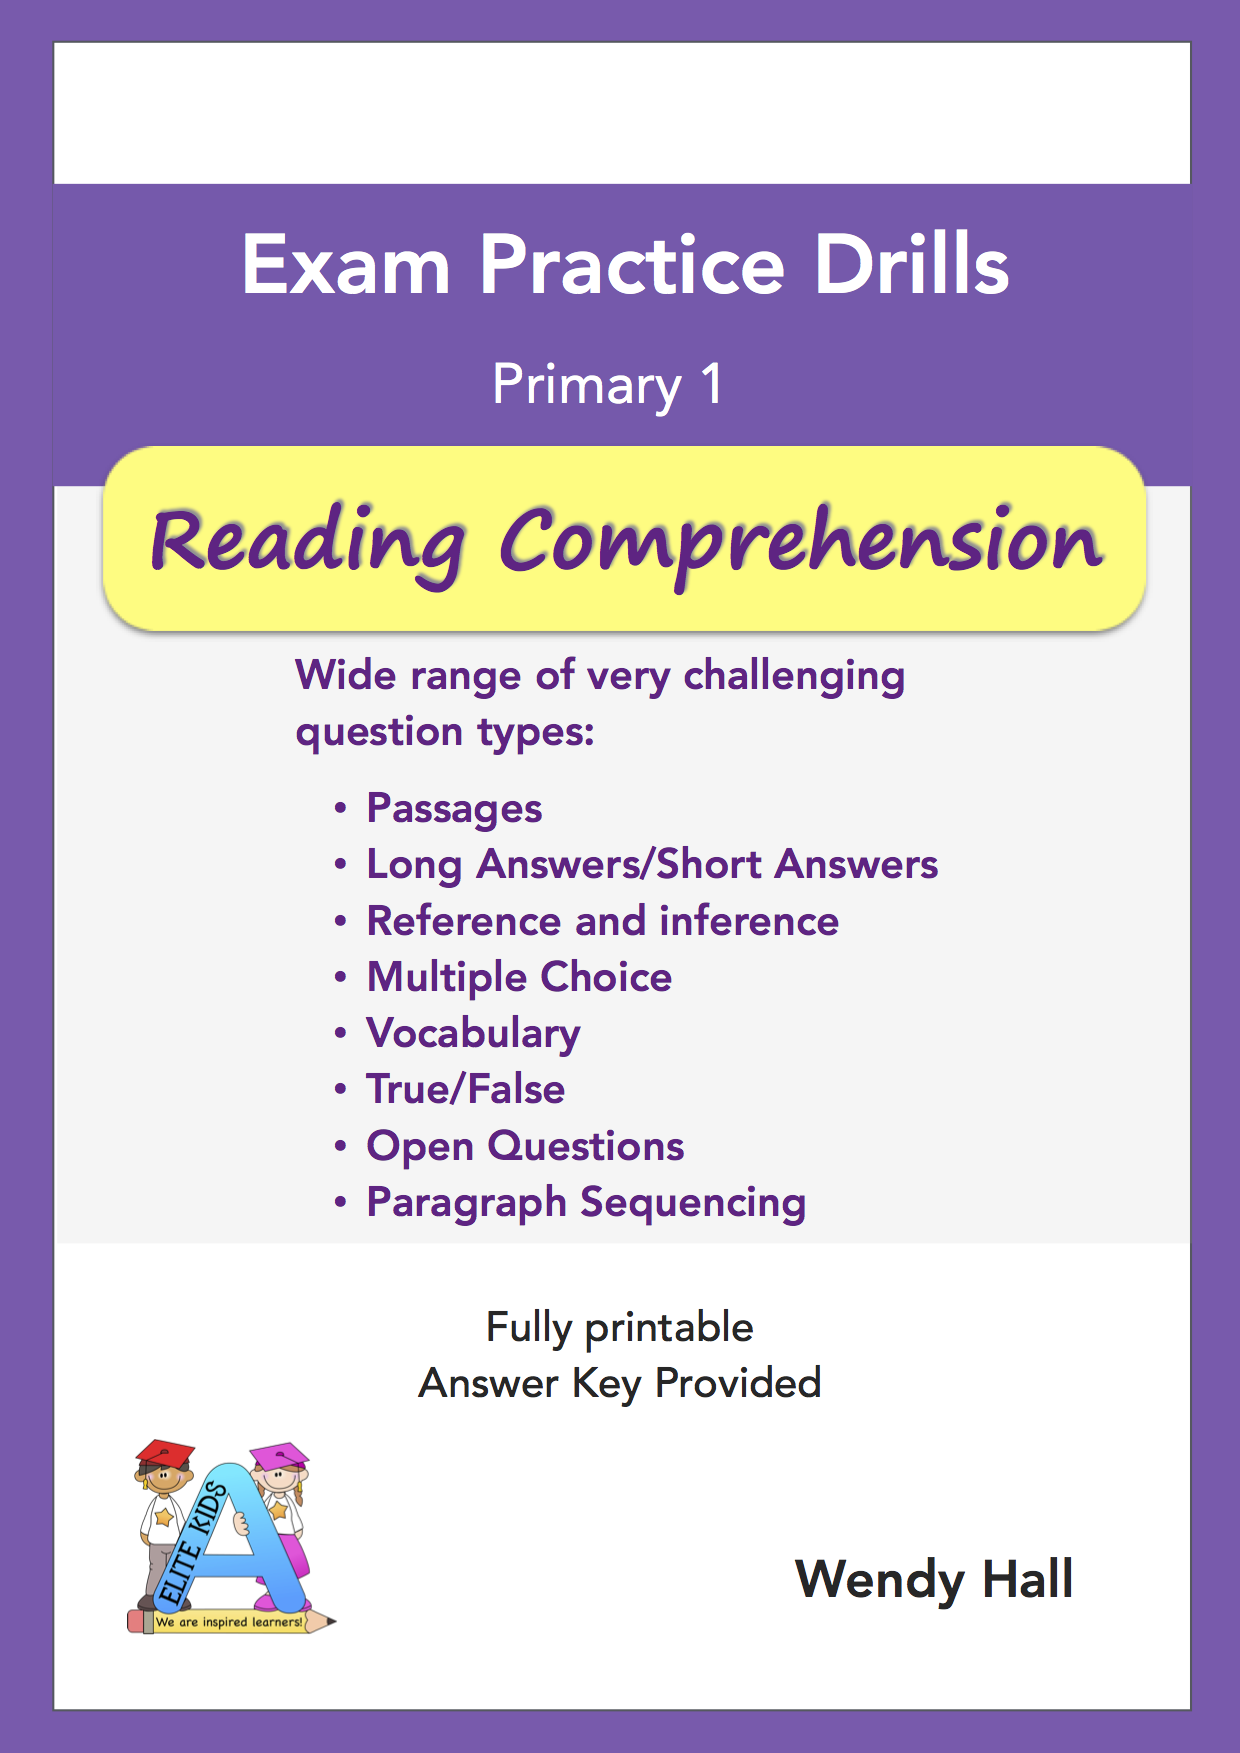 Elite Kids | Exam Practice Drills - Reading Comprehension